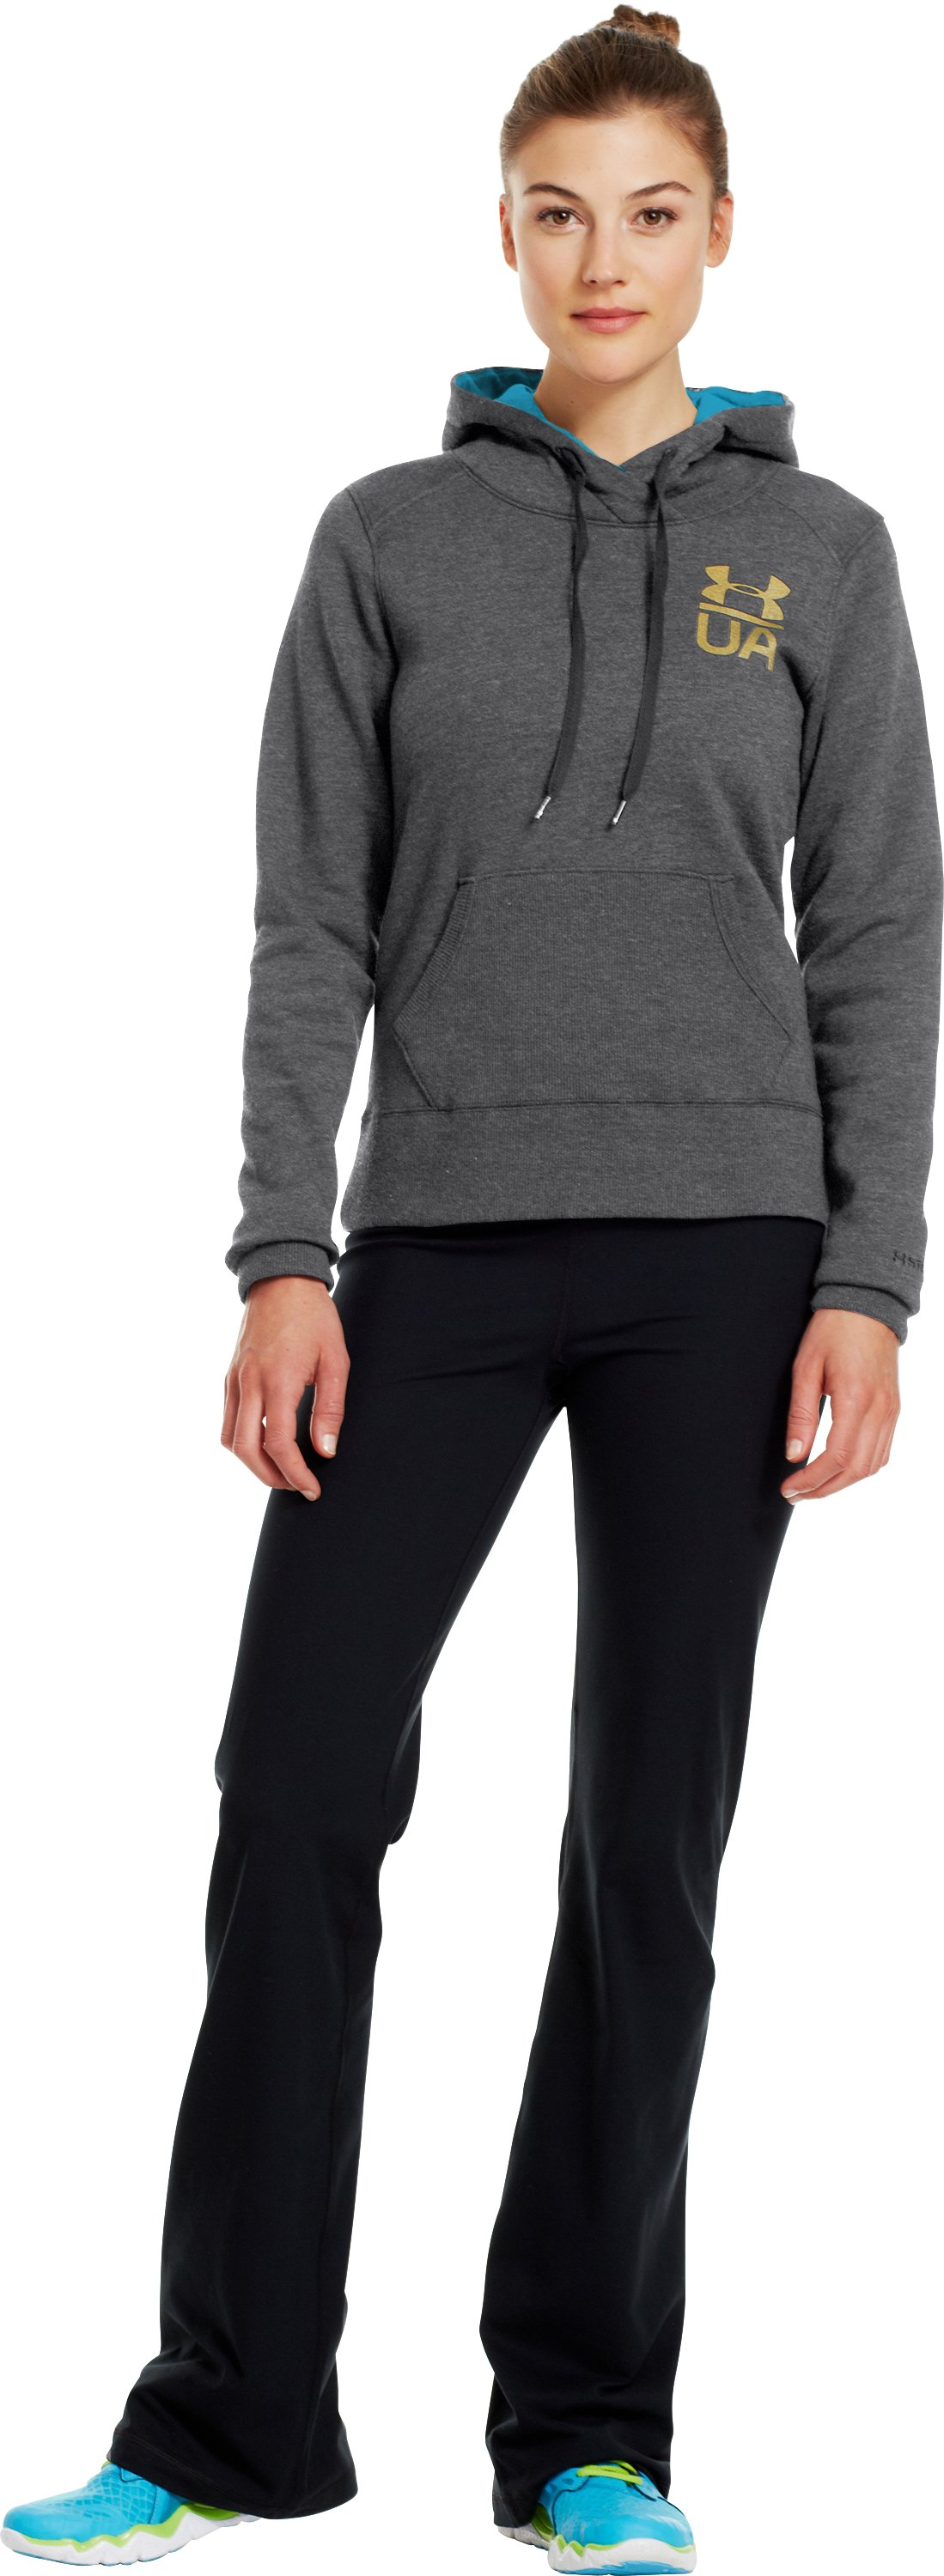 Women's Charged Cotton® Legacy Hoodie, Graphite